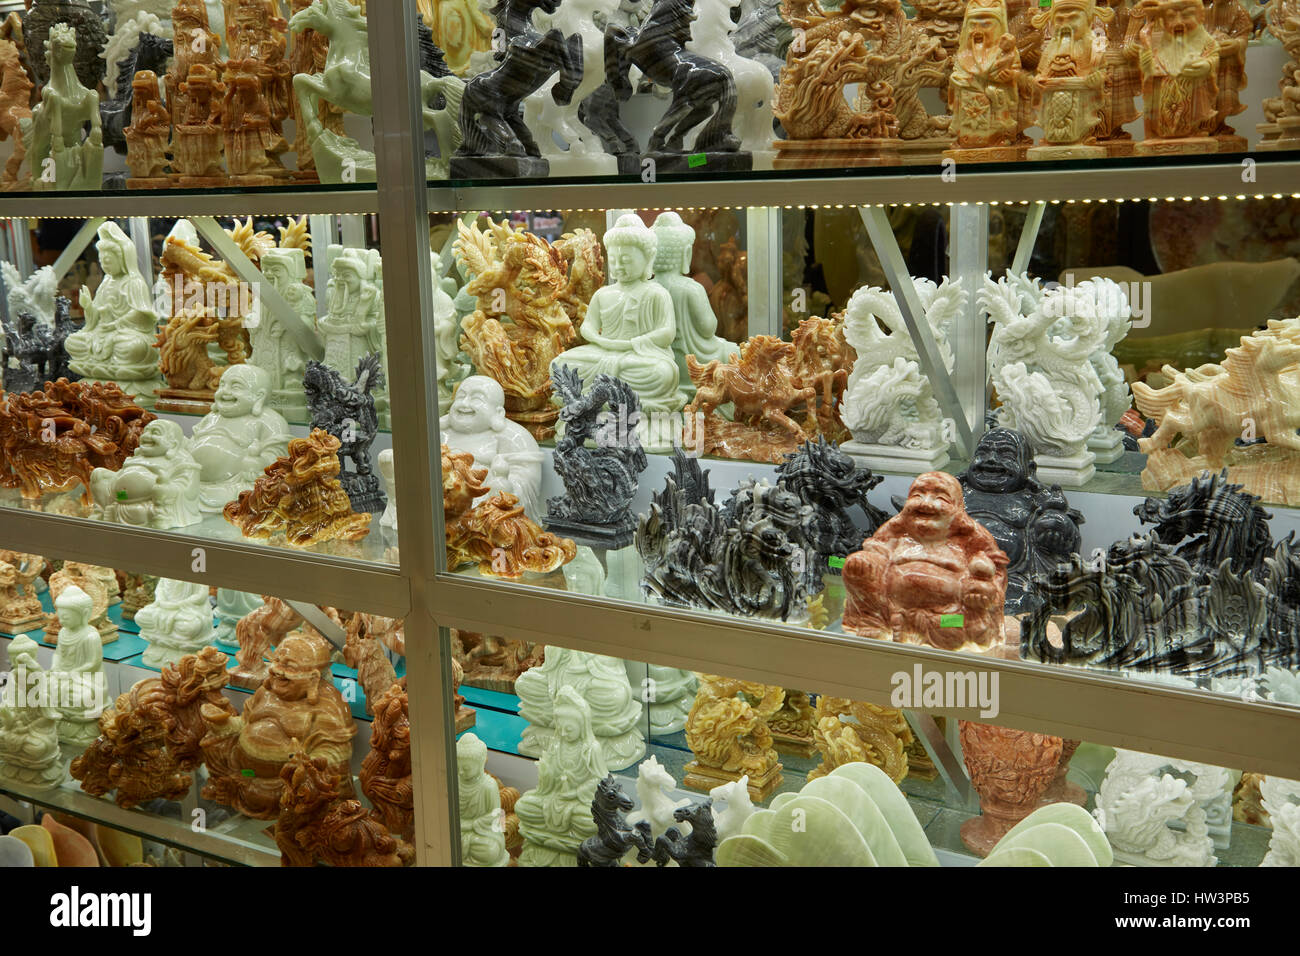 Marble carvings in tourist shop, Marble Mountains, Da Nang, Vietnam - Stock Image